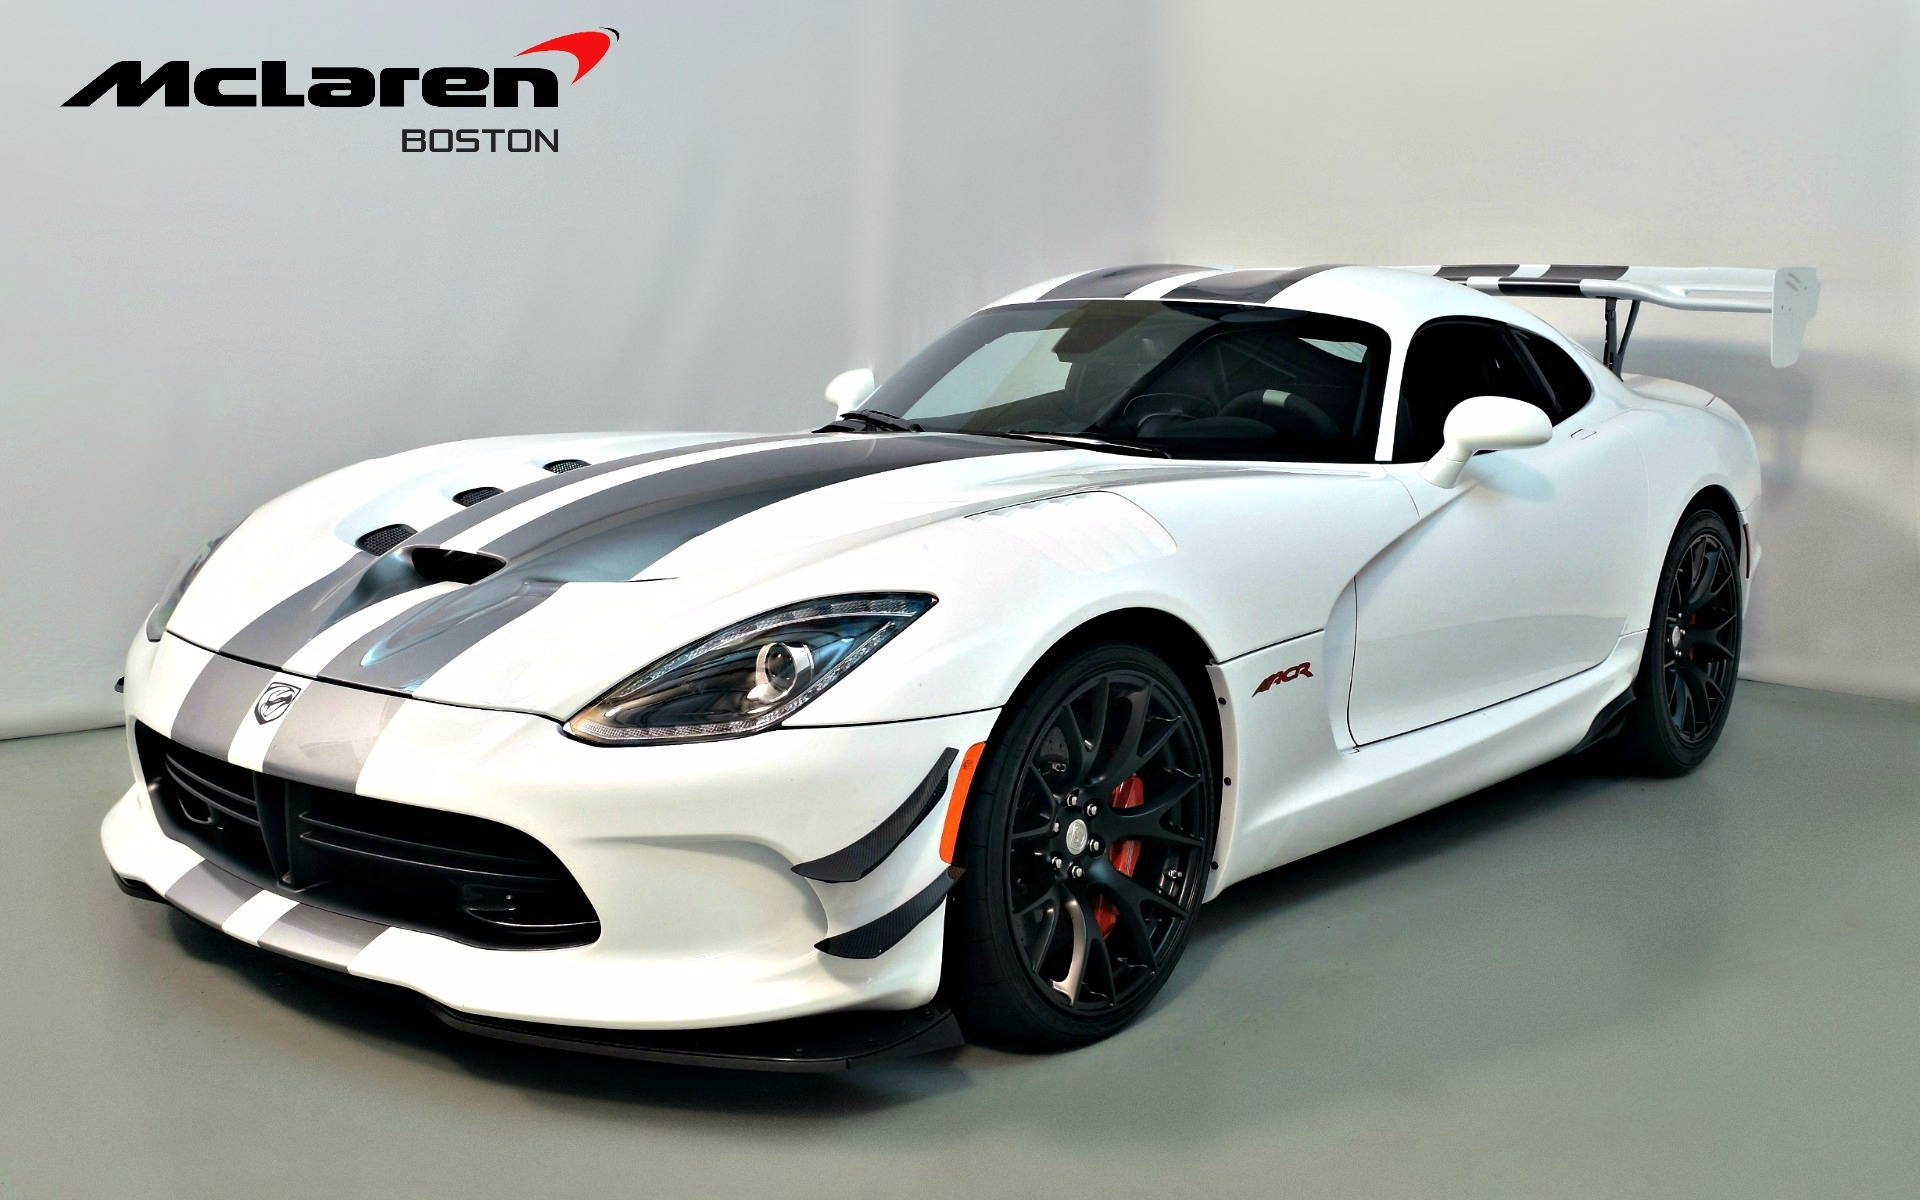 Dodge Viper Acr 2017 Specs >> 2016 Dodge Viper ACR For Sale in Norwell, MA 100487 | Mclaren Boston